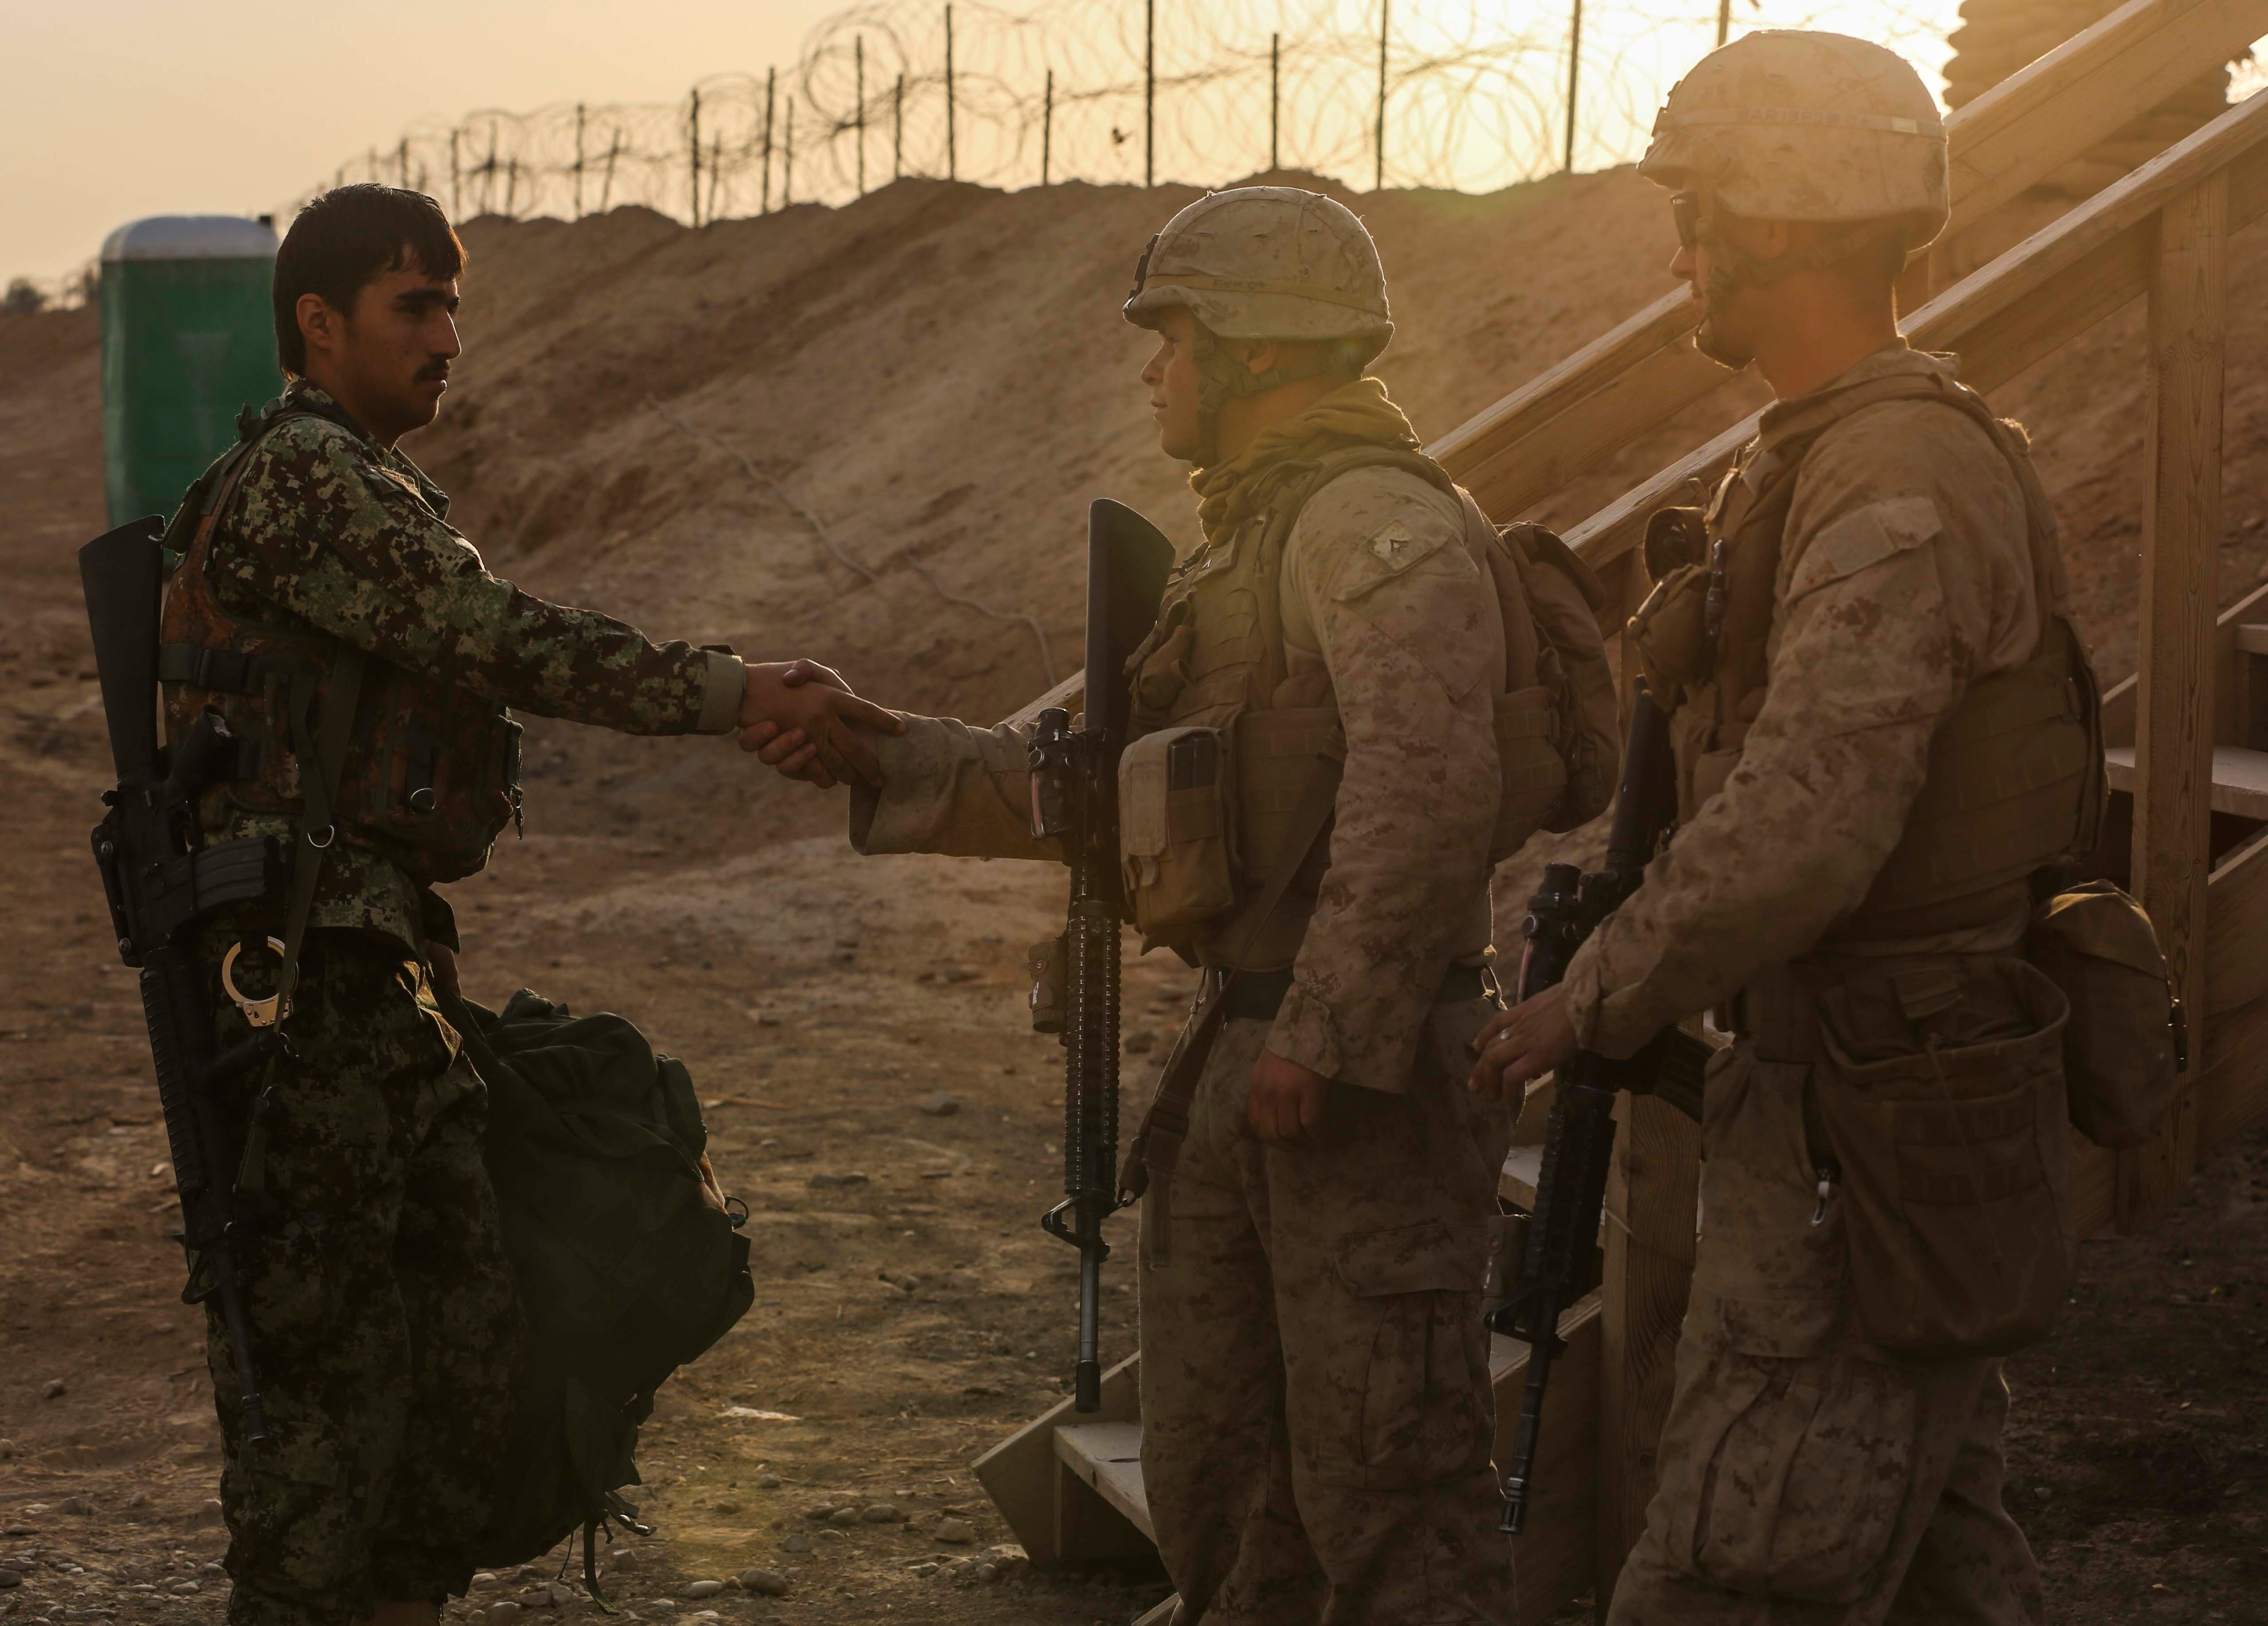 U.S. Marines with Alpha Company, 1st Battalion, 2d Marine Regiment, greet a member of the Afghanistan National Army (ANA) as he takes his post aboard Camp Leatherneck, Helmand Province, Afghanistan on October 27, 2014. The ANA will took command of all posts aboard Camp Leatherneck upon the end of Regional Command (Southwest) operations in Helmand province. US Marine Corps photo.